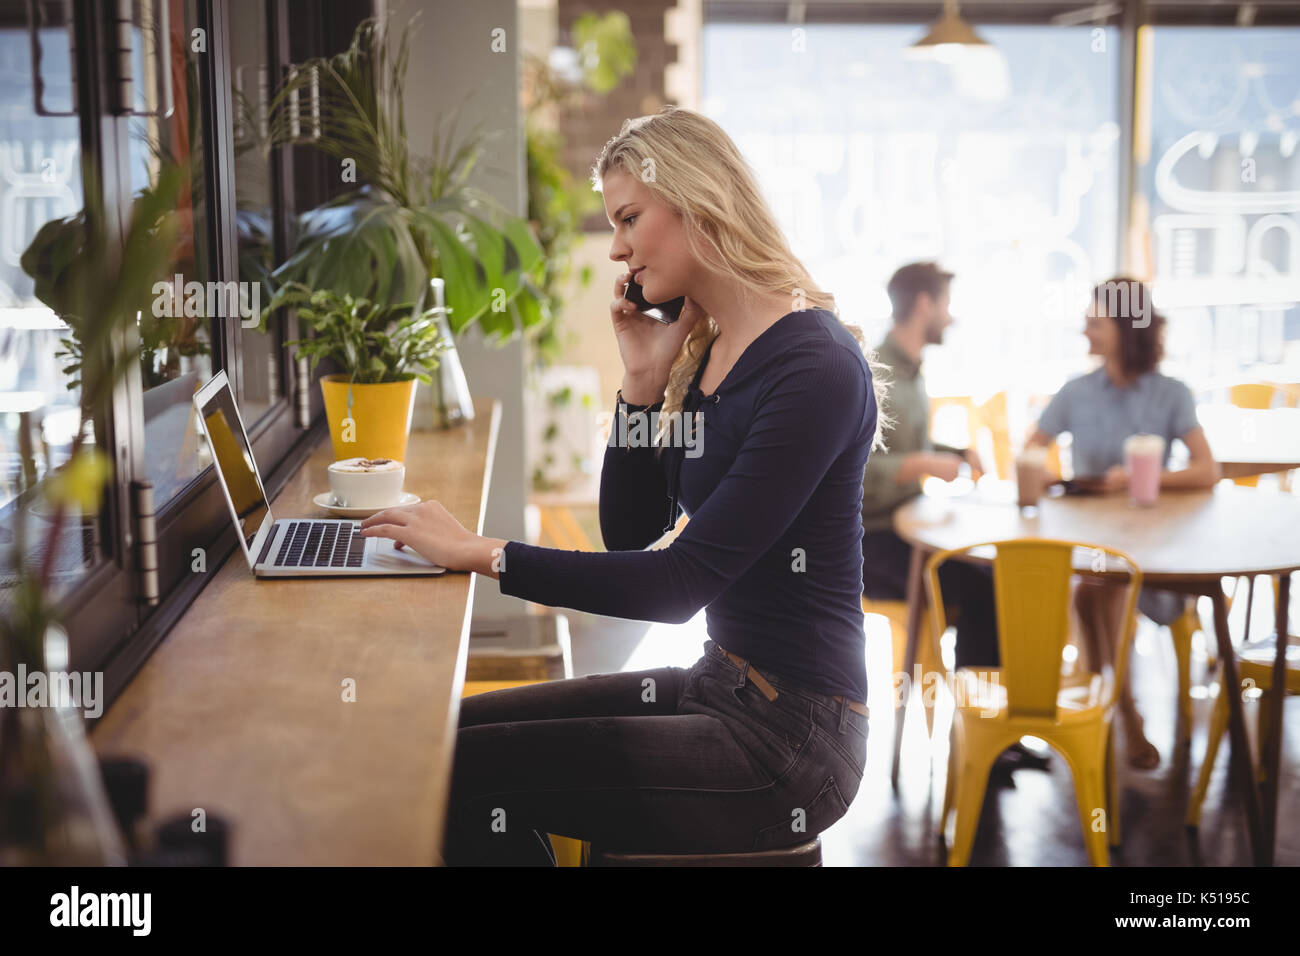 Side view of young blonde Woman talking on mobile phone while using laptop at cafe Photo Stock